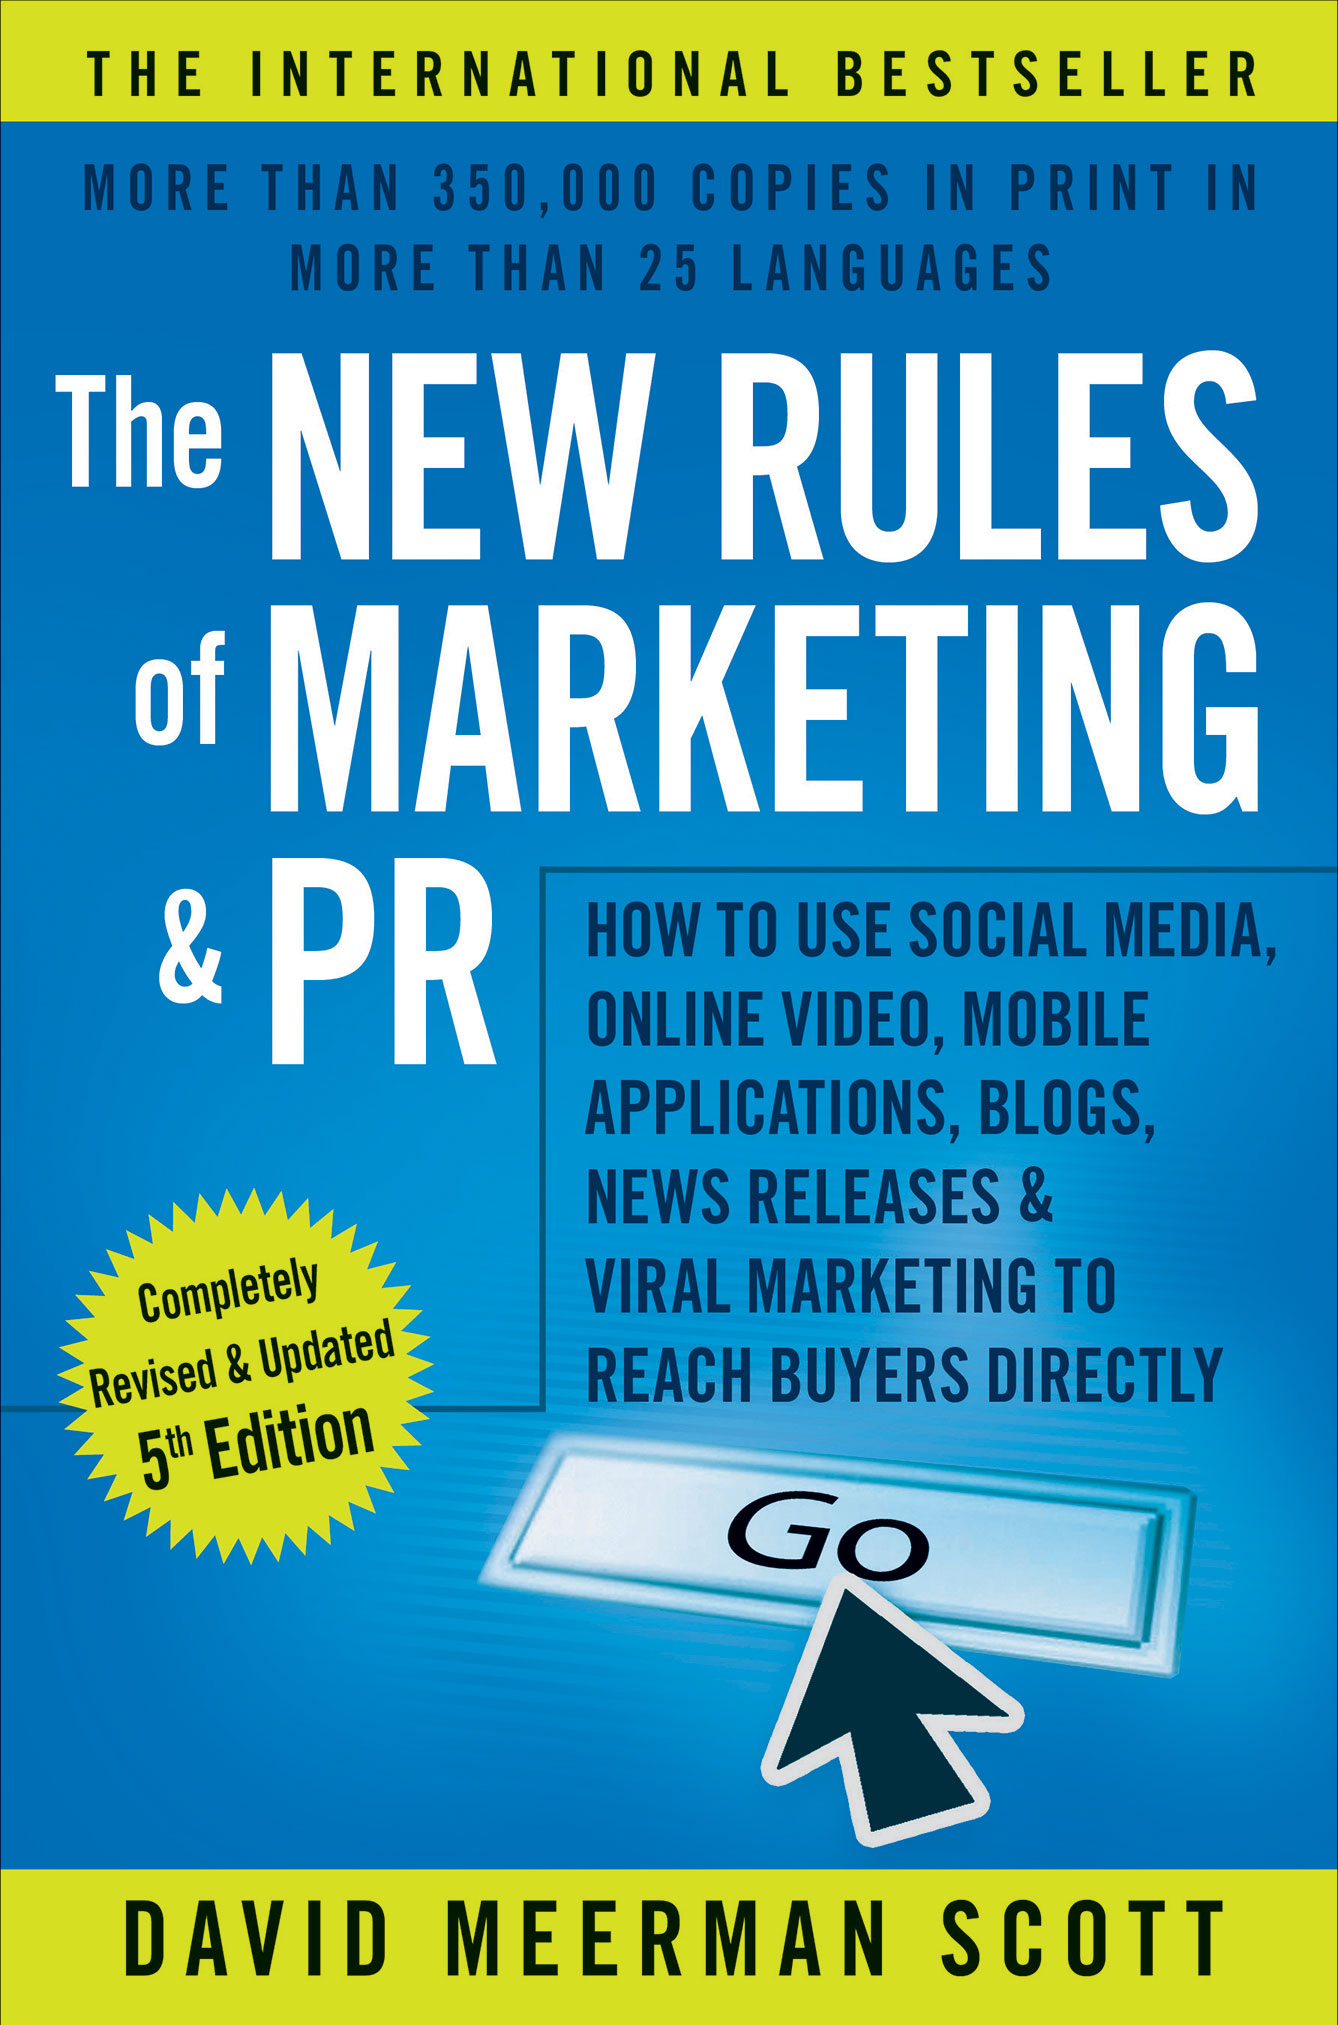 the-new-rules-of-marketing-and-pr-book_2.jpg